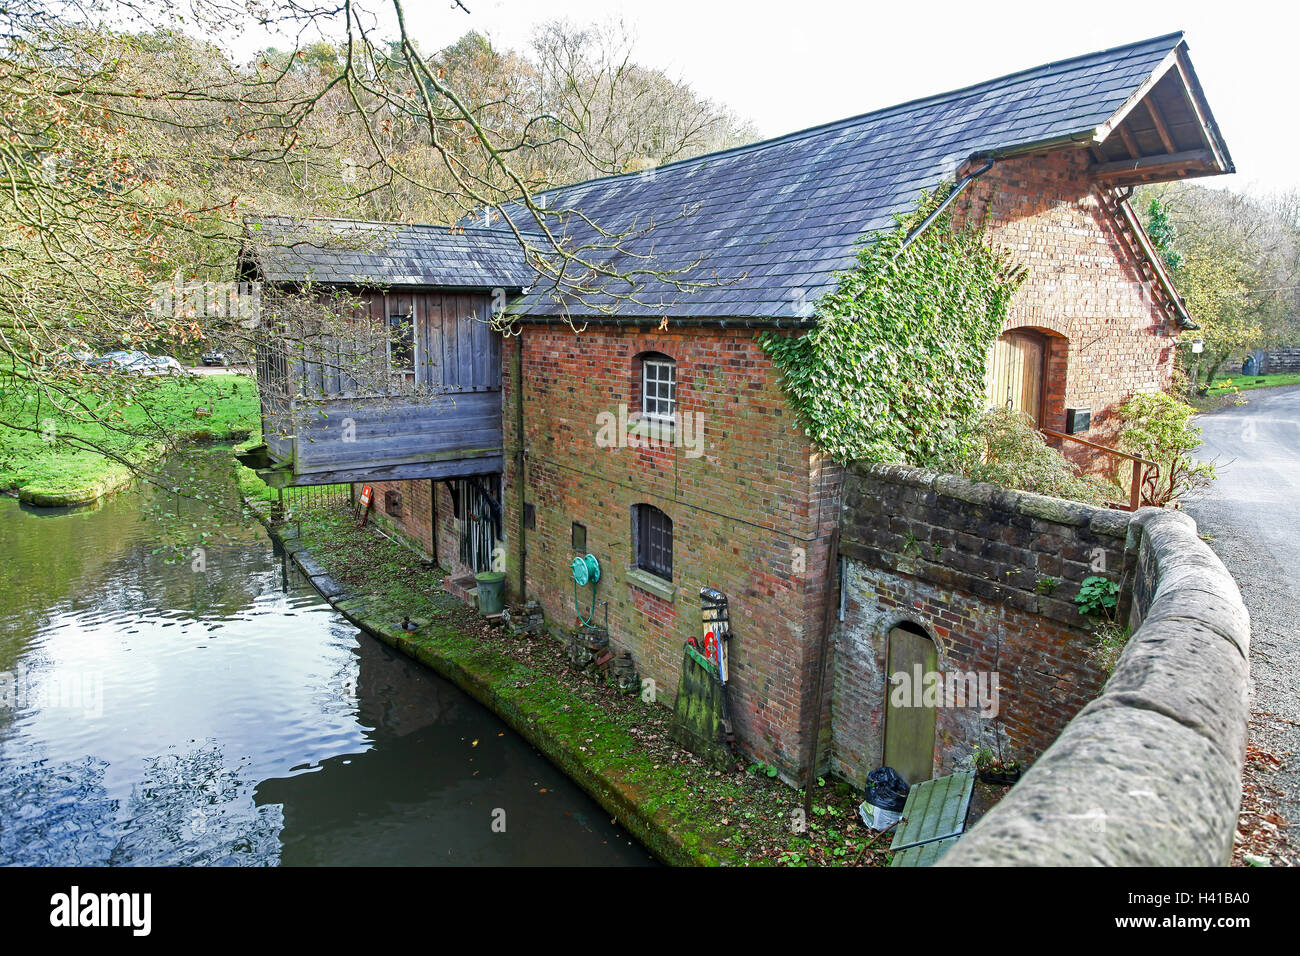 Froghall Wharf Caldon Canal Froghall Stoke-on-Trent Staffordshire Staffs England  UK - Stock Image